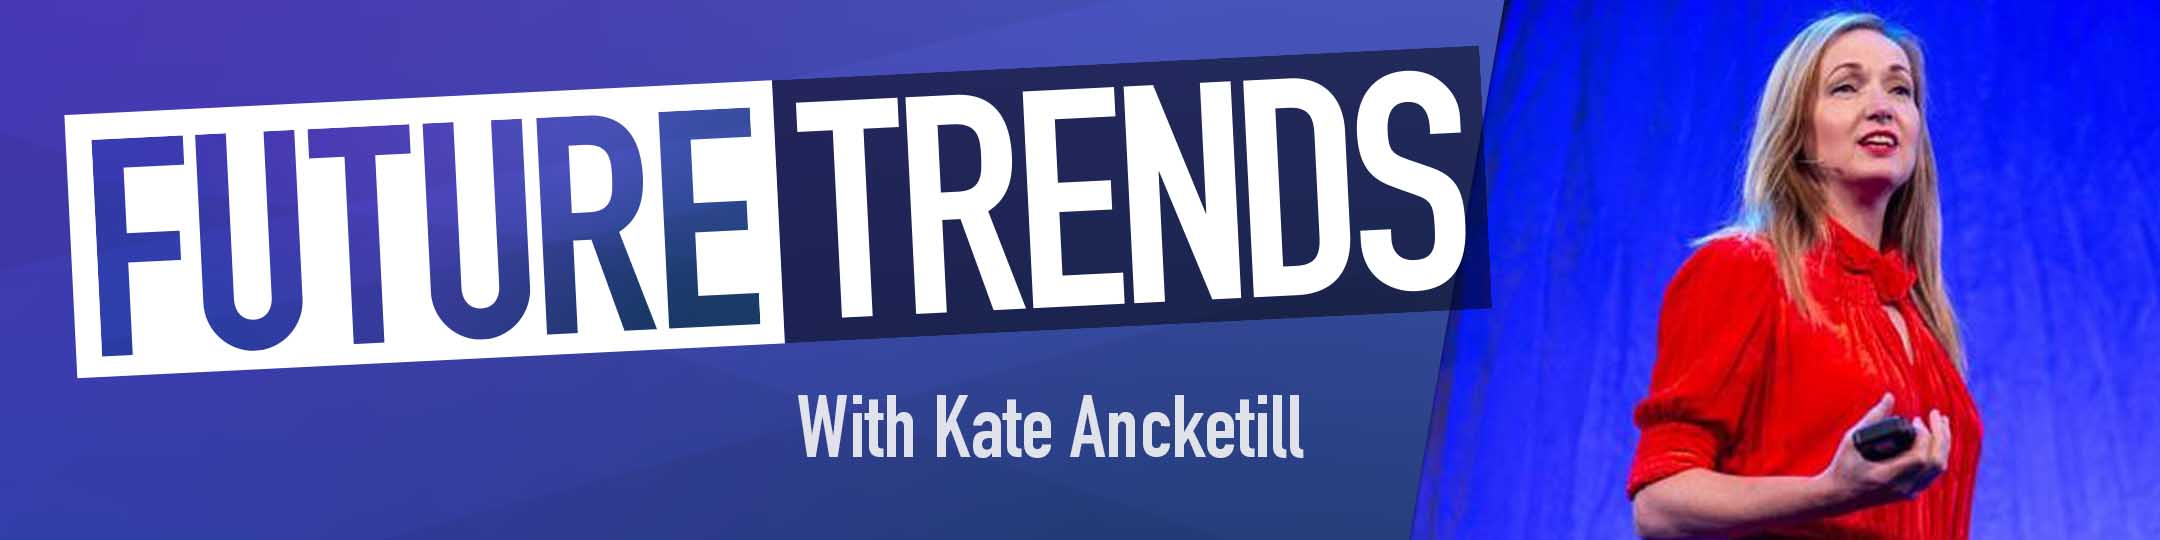 Future Trends banner